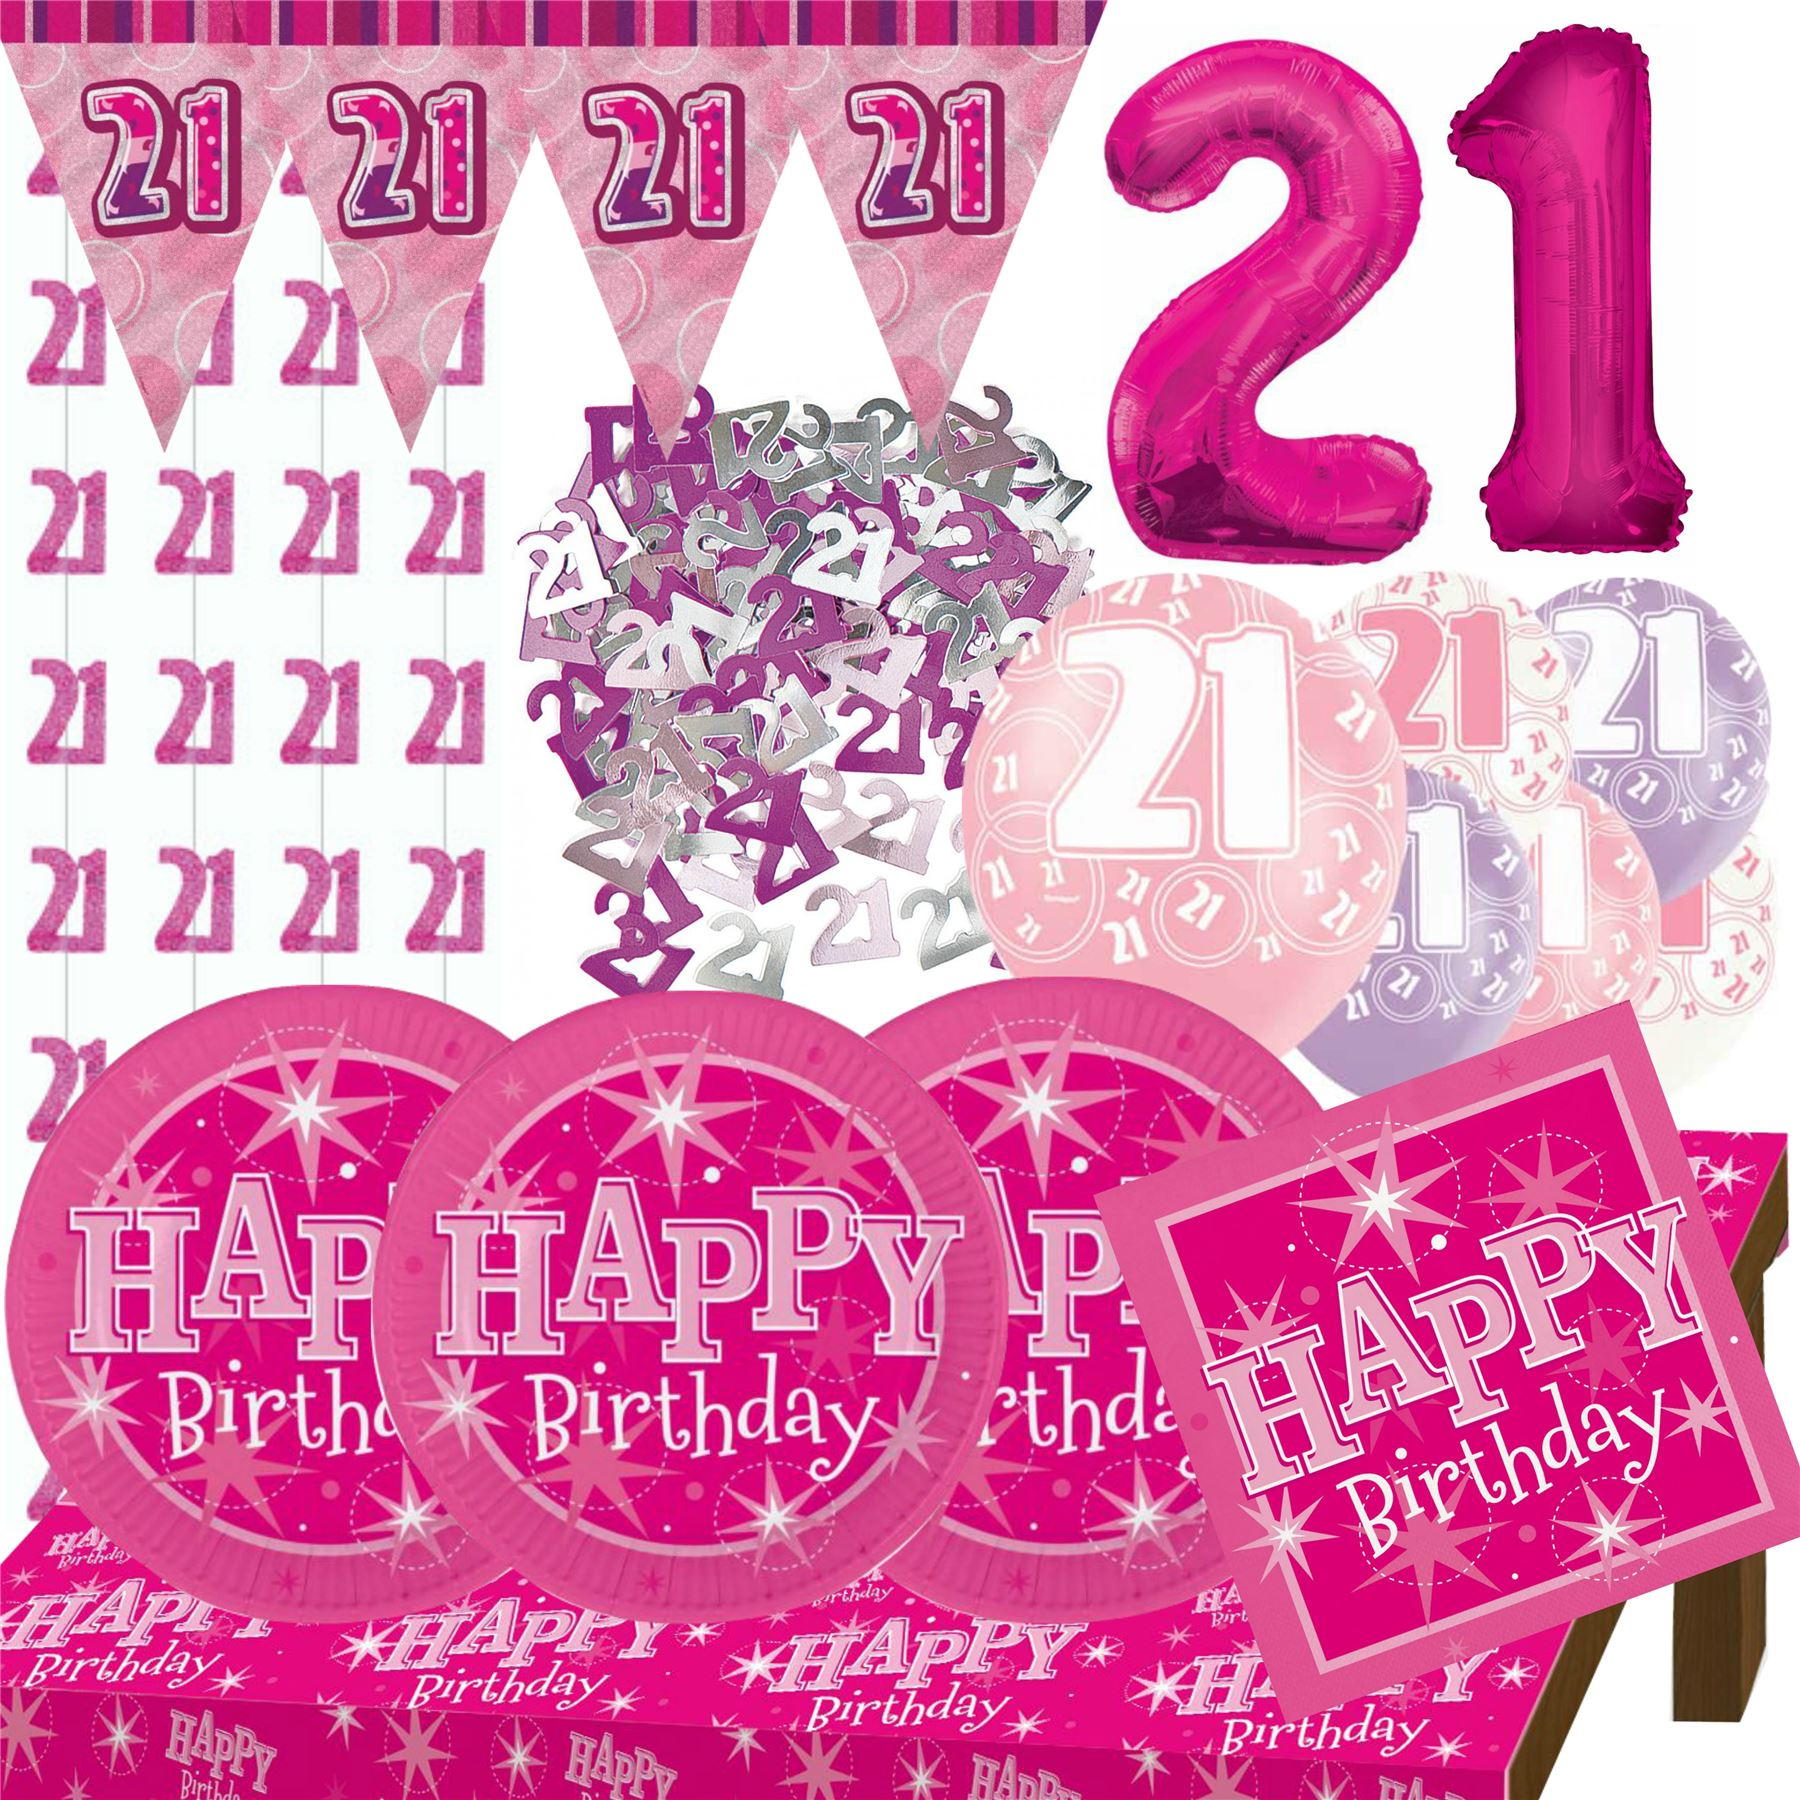 happy 21st birthday Pink Age 21 Female Happy 21st Birthday Banner Confetti Balloons  happy 21st birthday